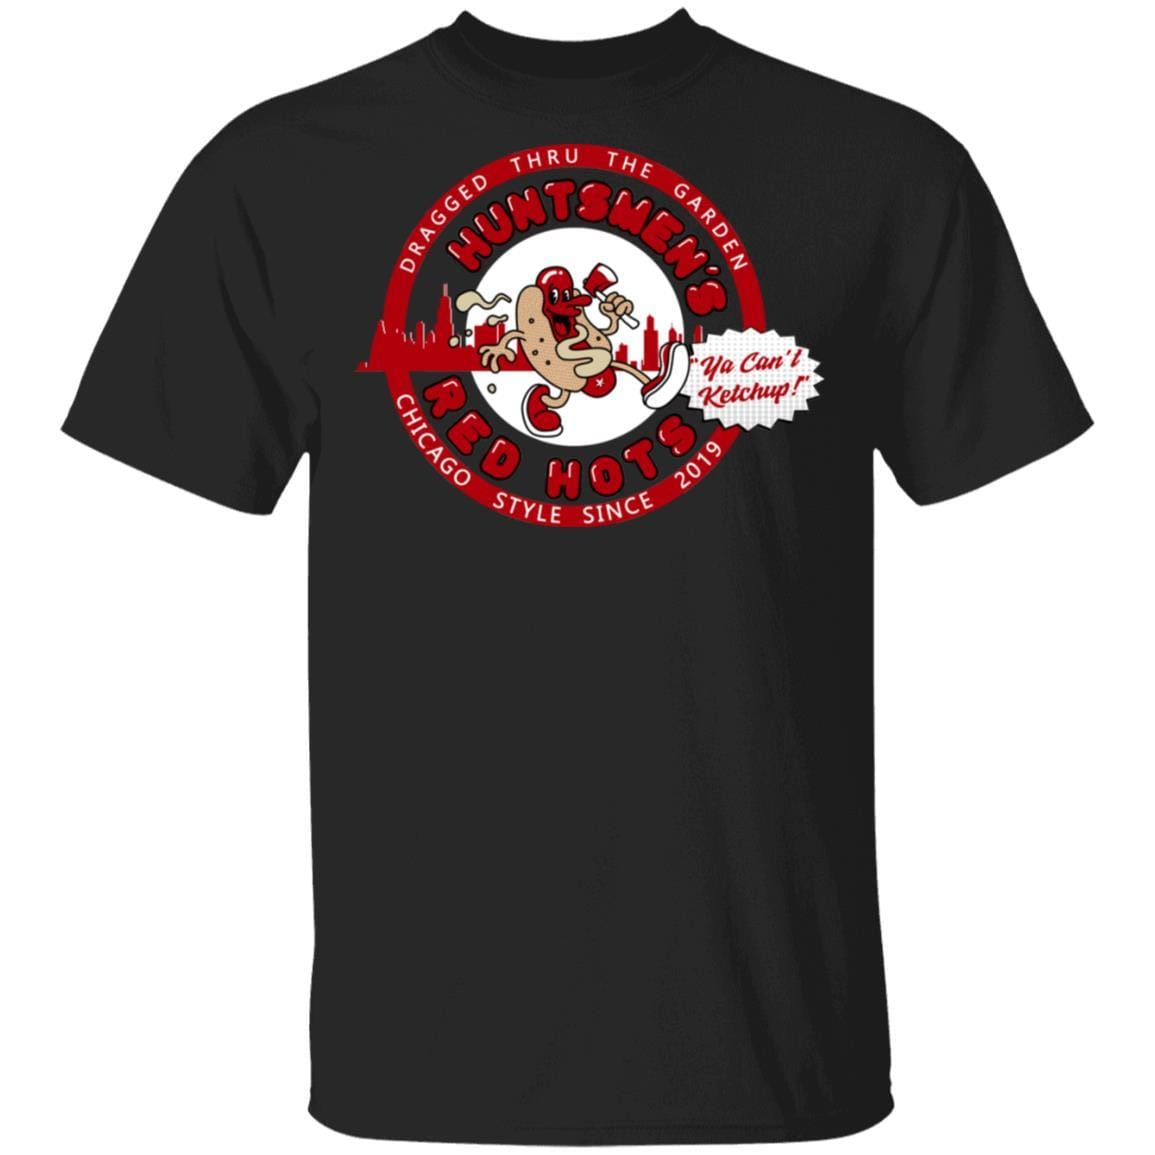 Huntsmen's Red Hots Ya Can't Ketchup Chicago Style 2019 T-Shirts, Hoodies 1049-9953-88445034-48144 - Tee Ript